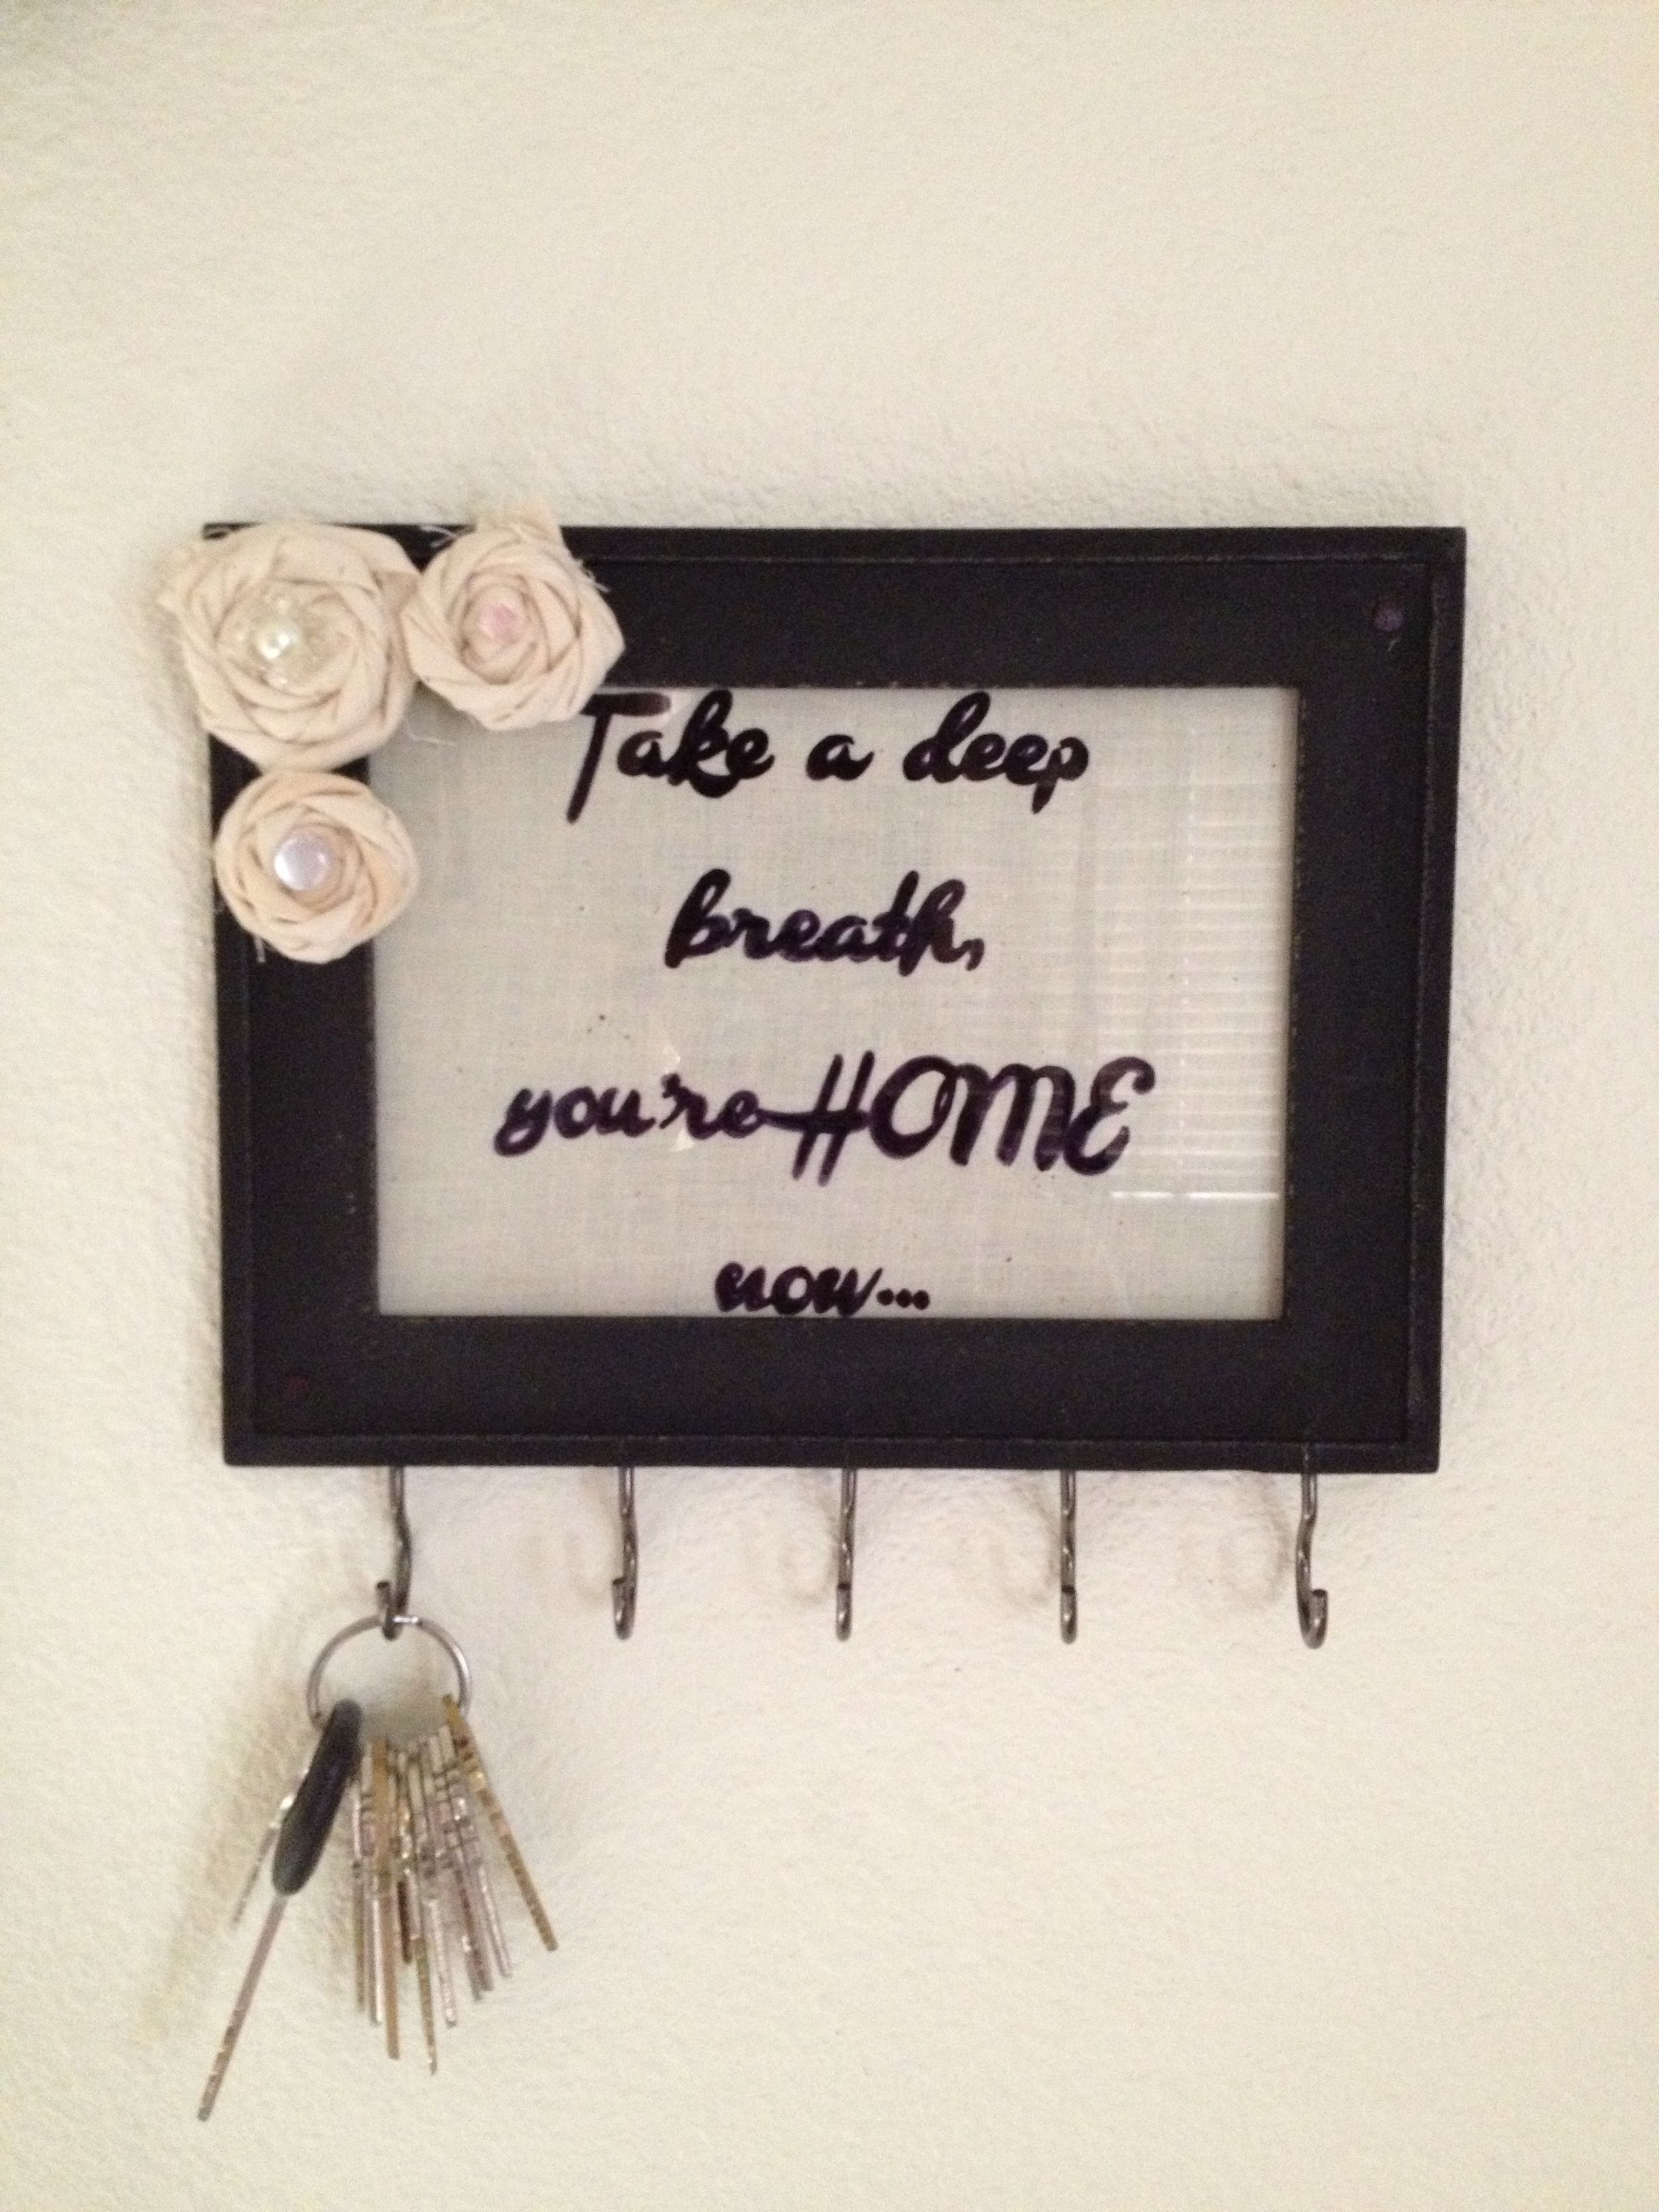 Diy Key Holder Would Be Cute As A Dry Erase Quote Board With A